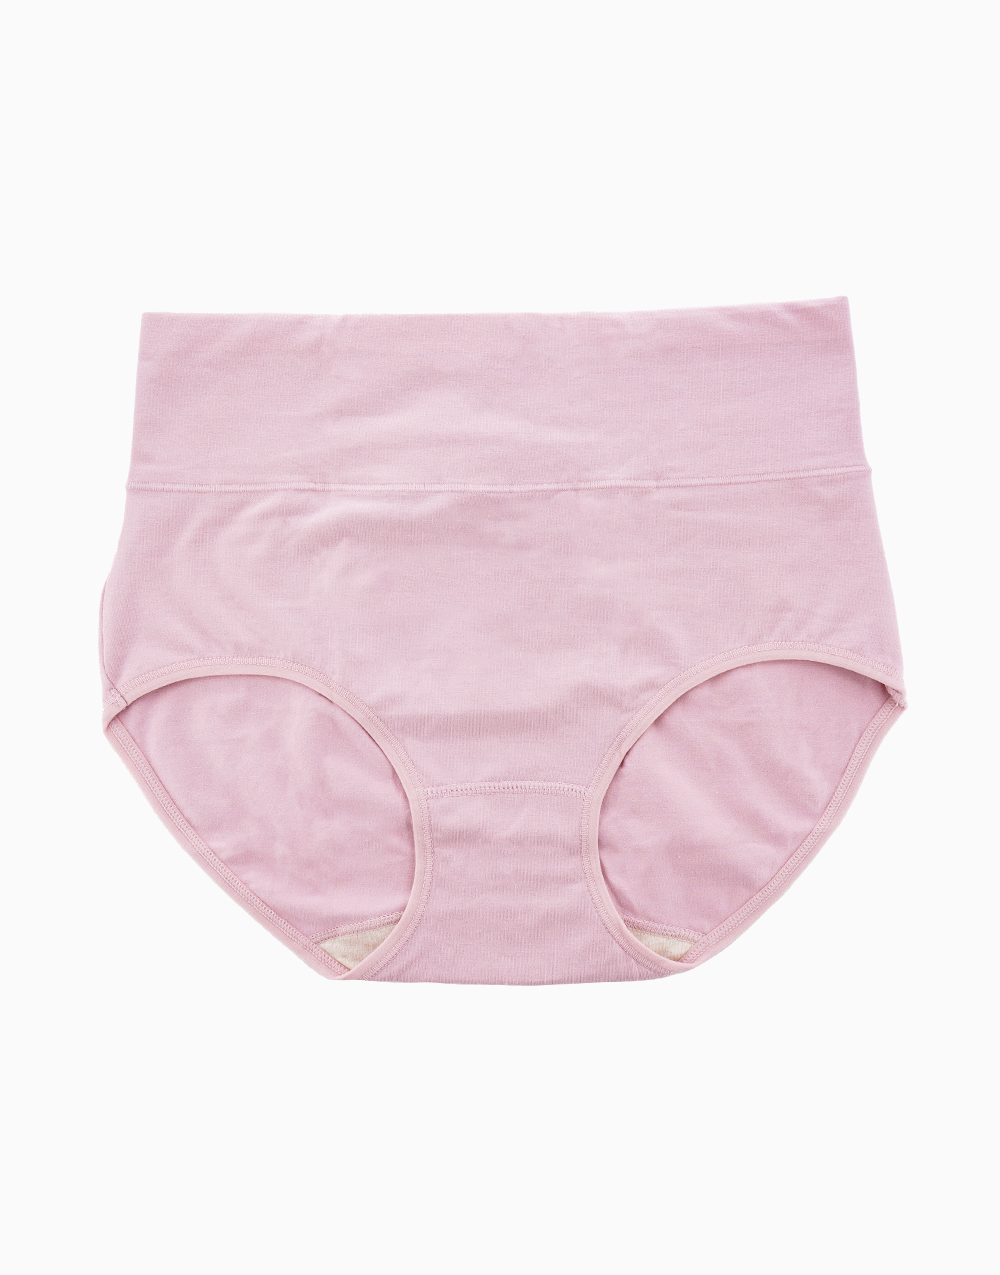 Belly Bikinis in Blush Pink (Set of 3 High Rise Control Panties) by Jellyfit   Small